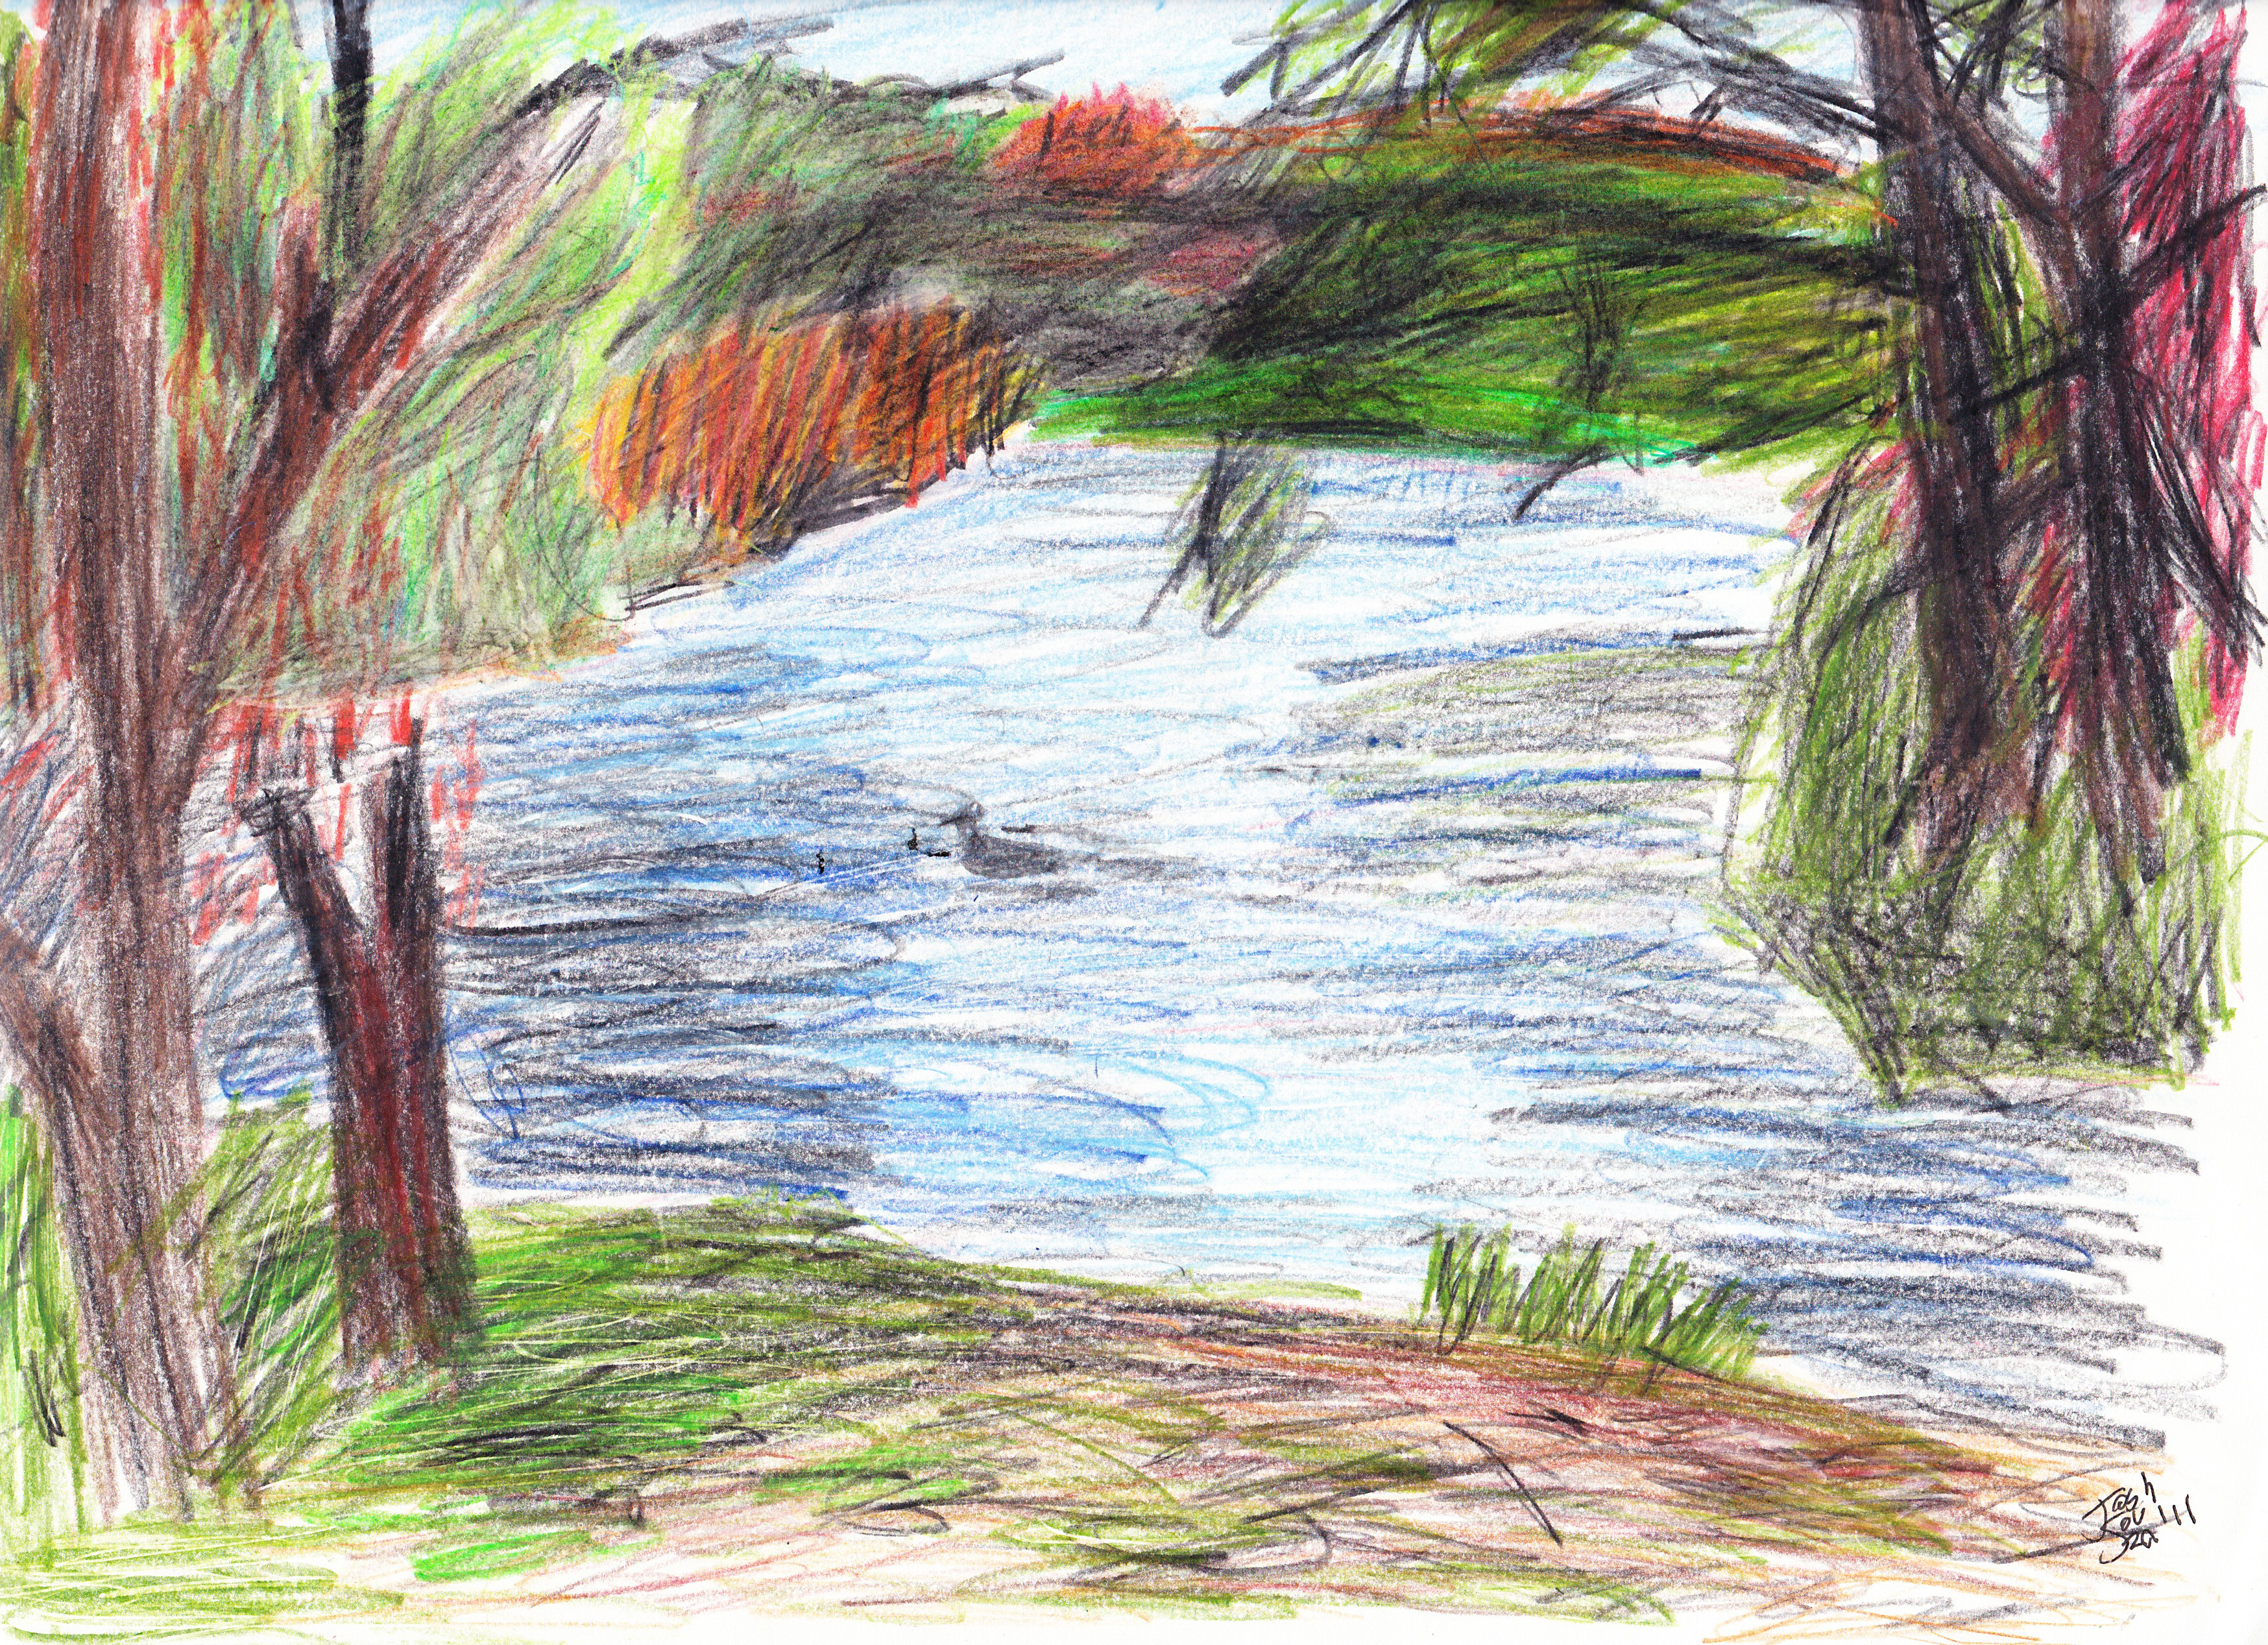 How to draw with colored pencils - First Colored Pencil Drawing By Joshsouza On Deviantart